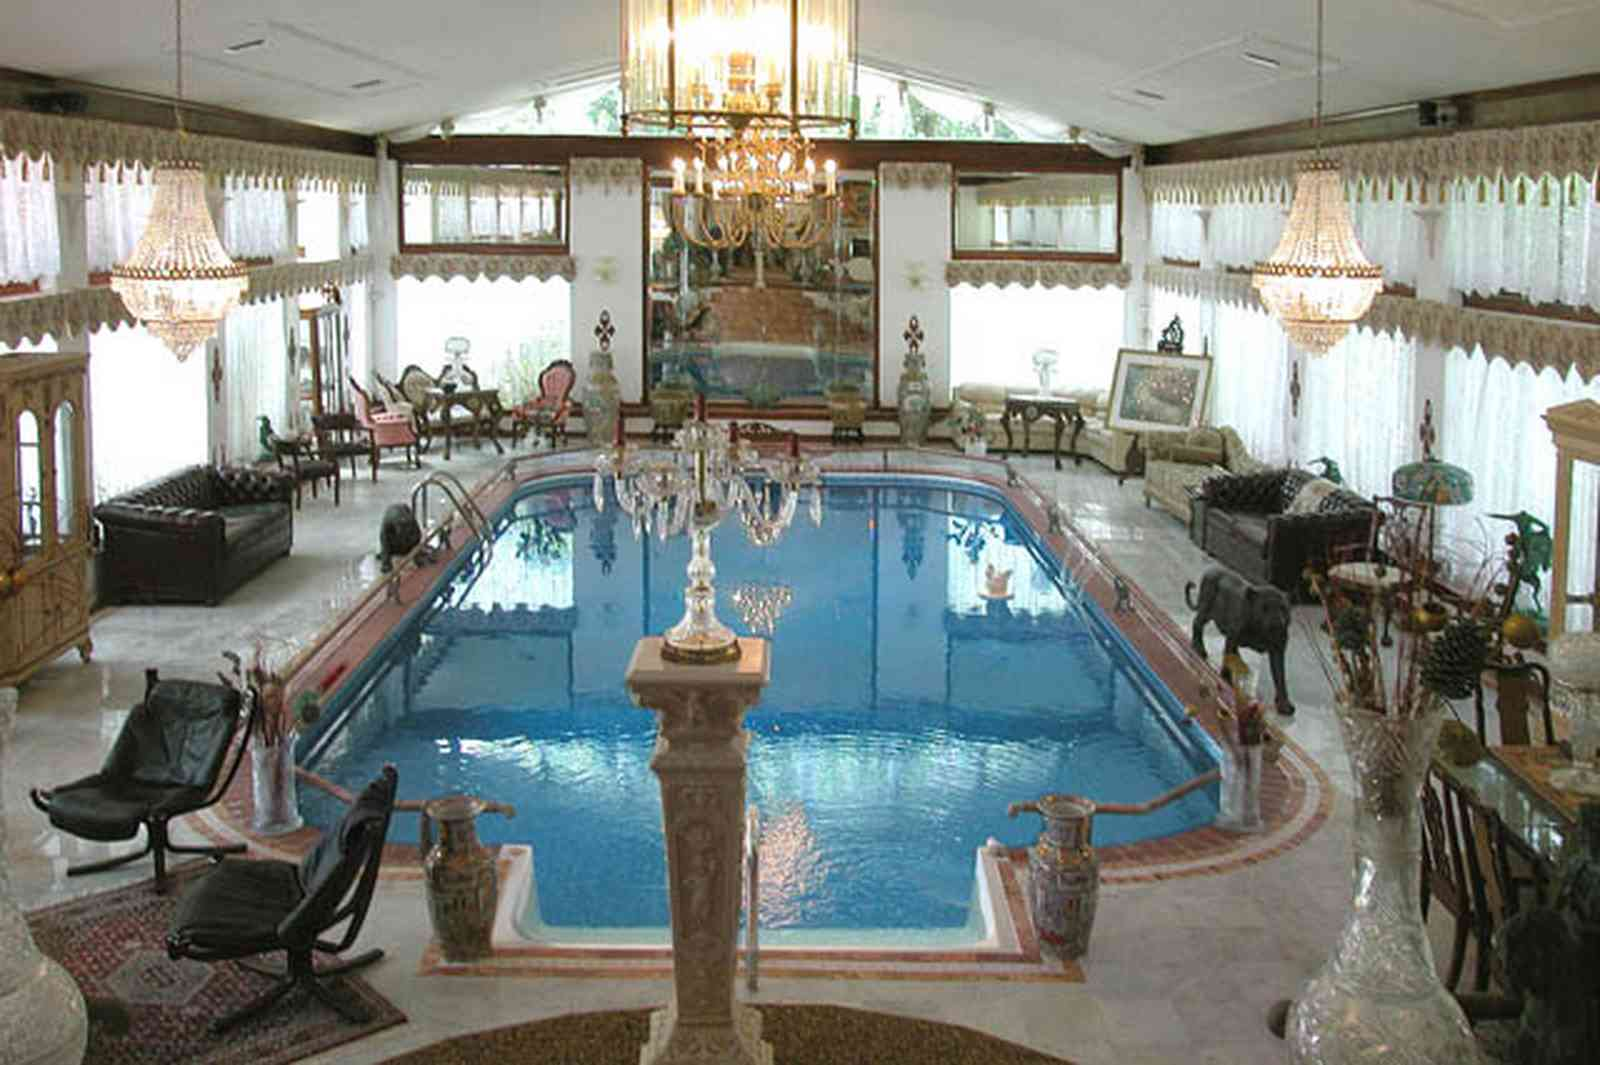 Scenic-Highway:-3780-Scenic-Ridge-Drive_04.jpg:  olympic swimming pool, living room, marble floors, chinese urns, tassels, oriental rug, pool in livingroom, inside swimming pool, french provincial furniture, crystal chandelier, swag curtains